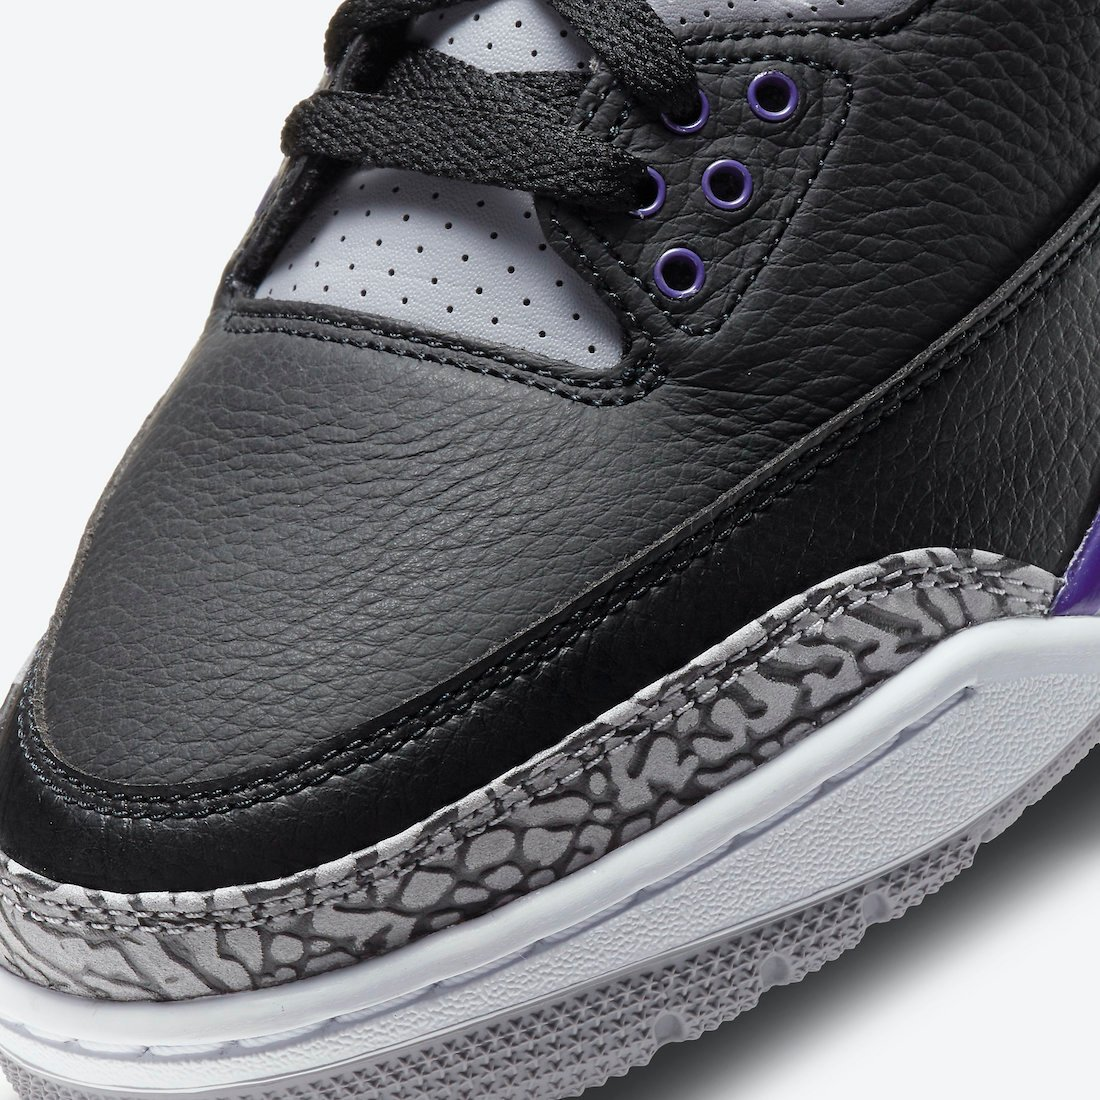 Air Jordan 3 Black Court Purple CT8532-050